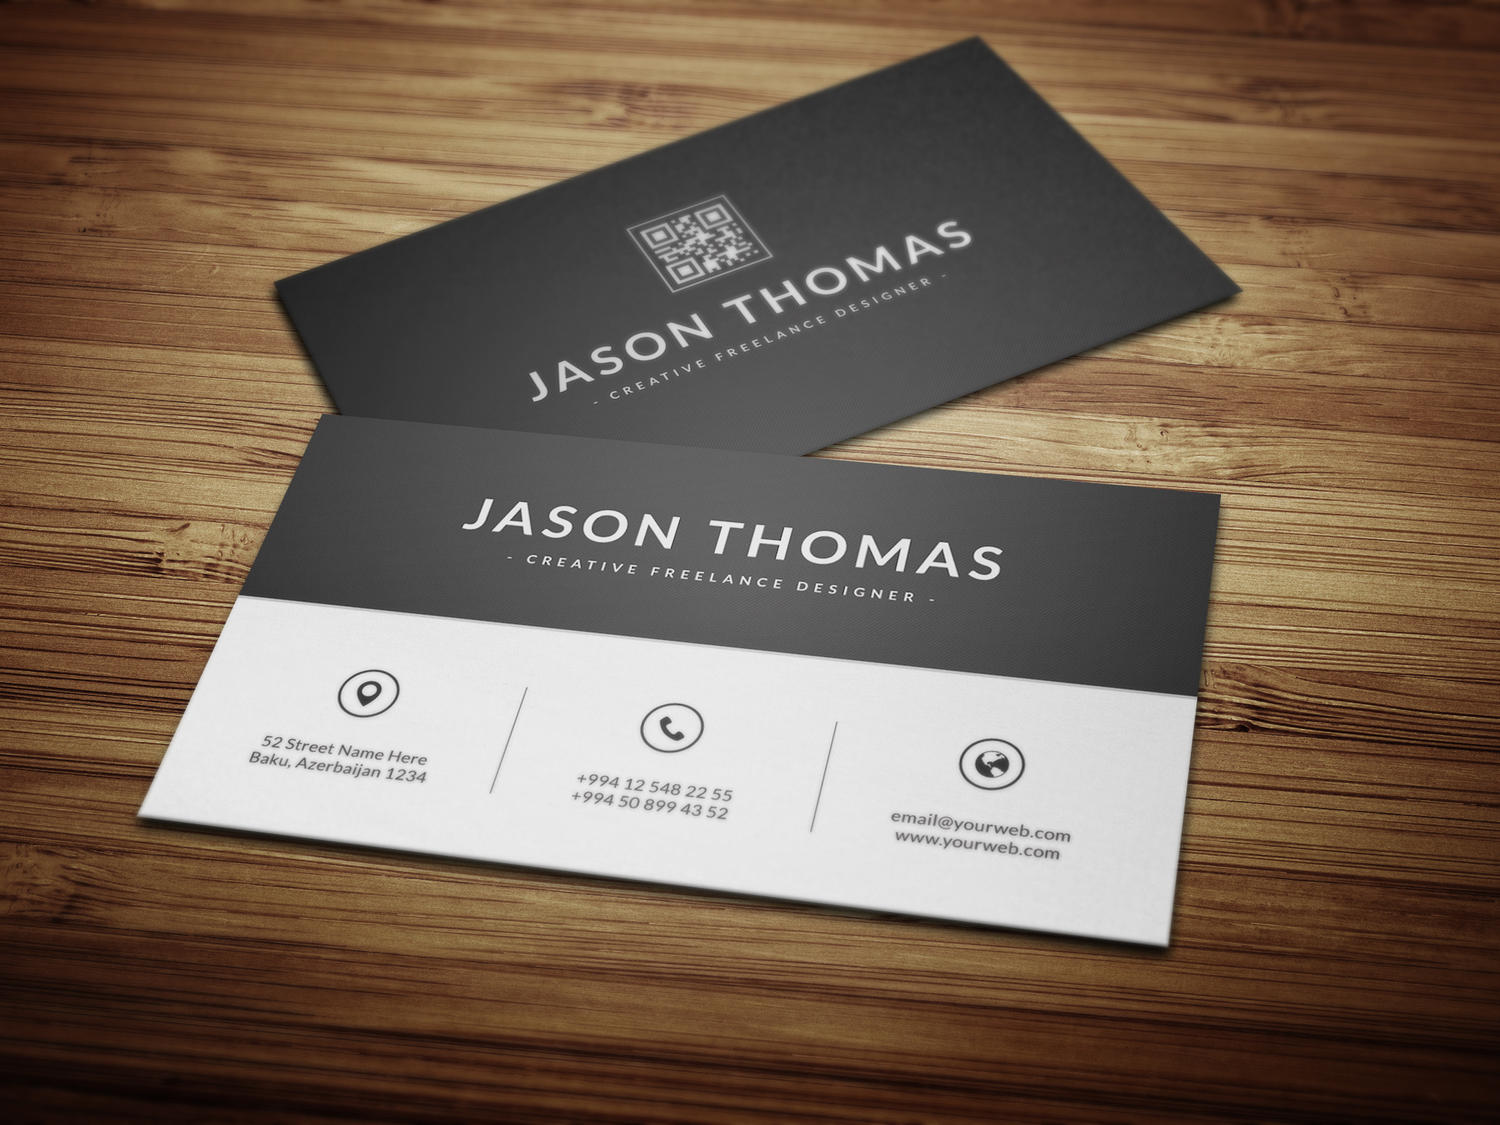 Cool business card designs idealstalist cool business card designs reheart Choice Image